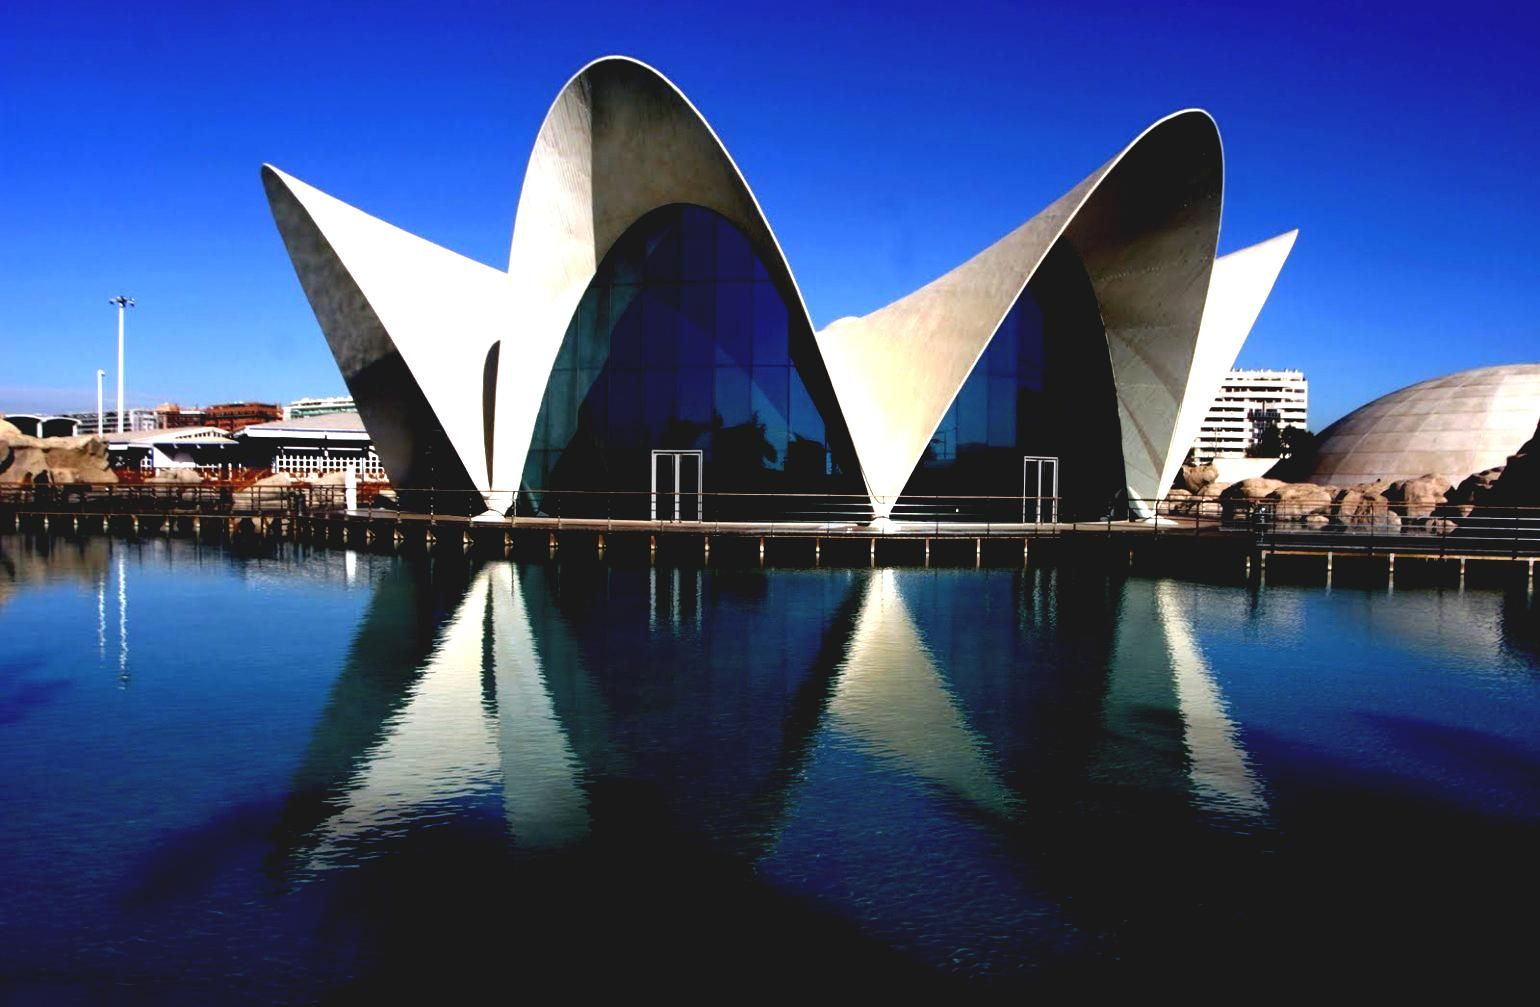 Best Architecture Buildings In The World image result for cool downtown buildings | downtown buildings with